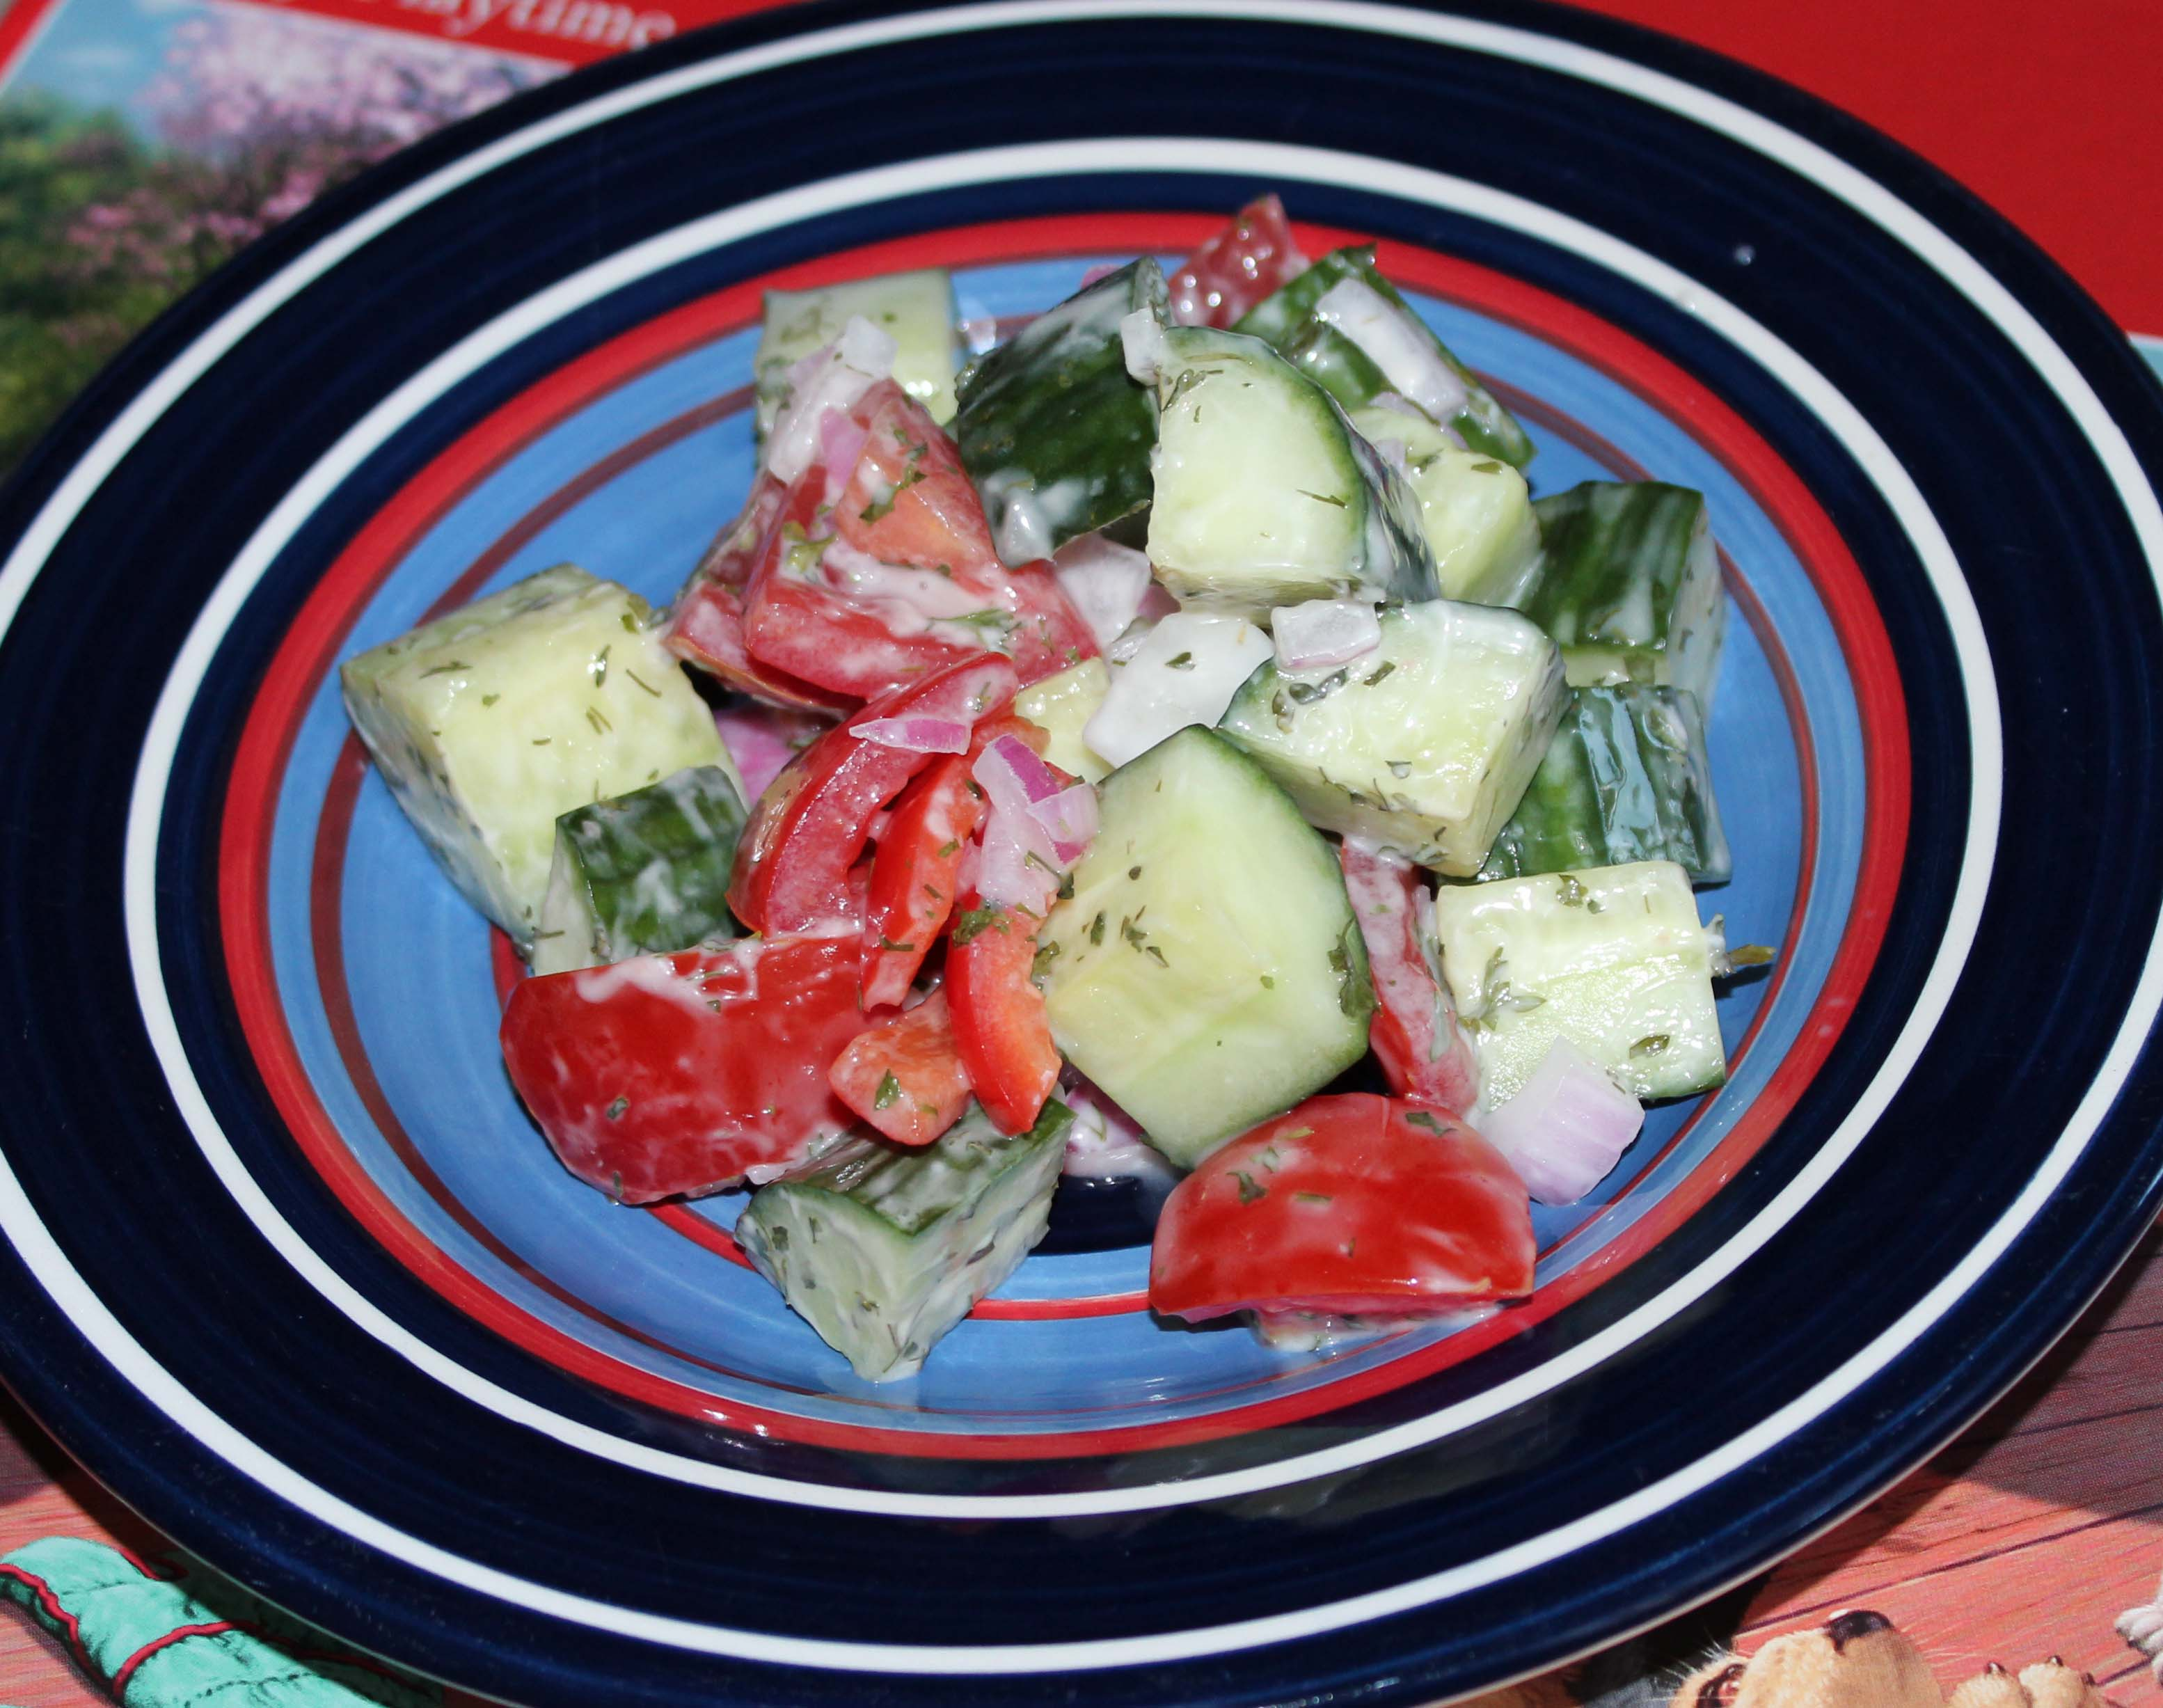 Twisted Sister's Creamy Cucumber Salad